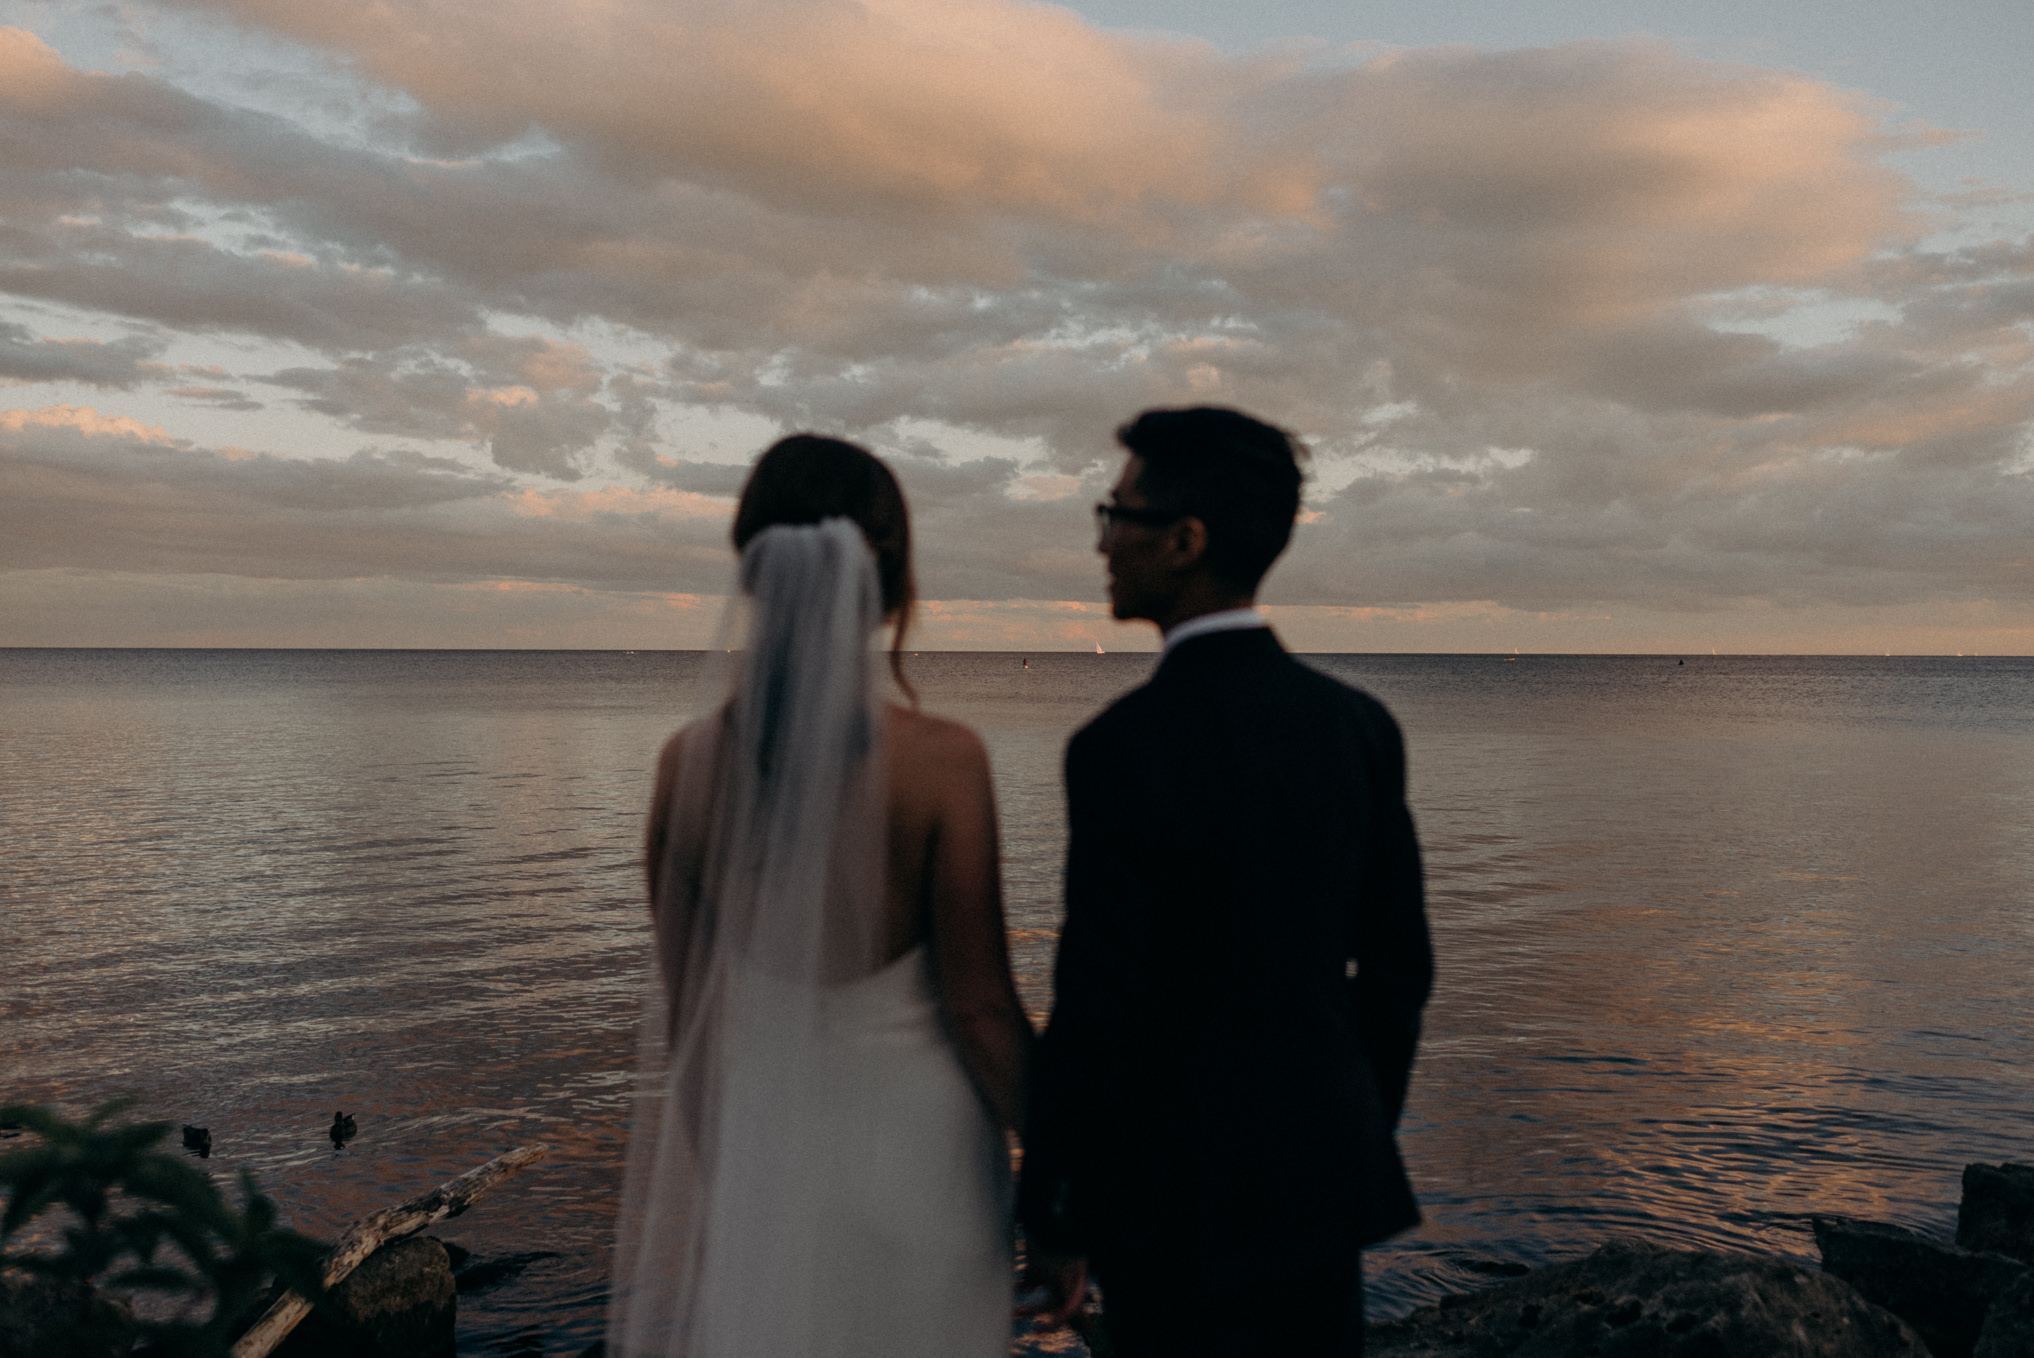 bride and groom looking out onto water at sunset at Humber bay. Toronto elopement.